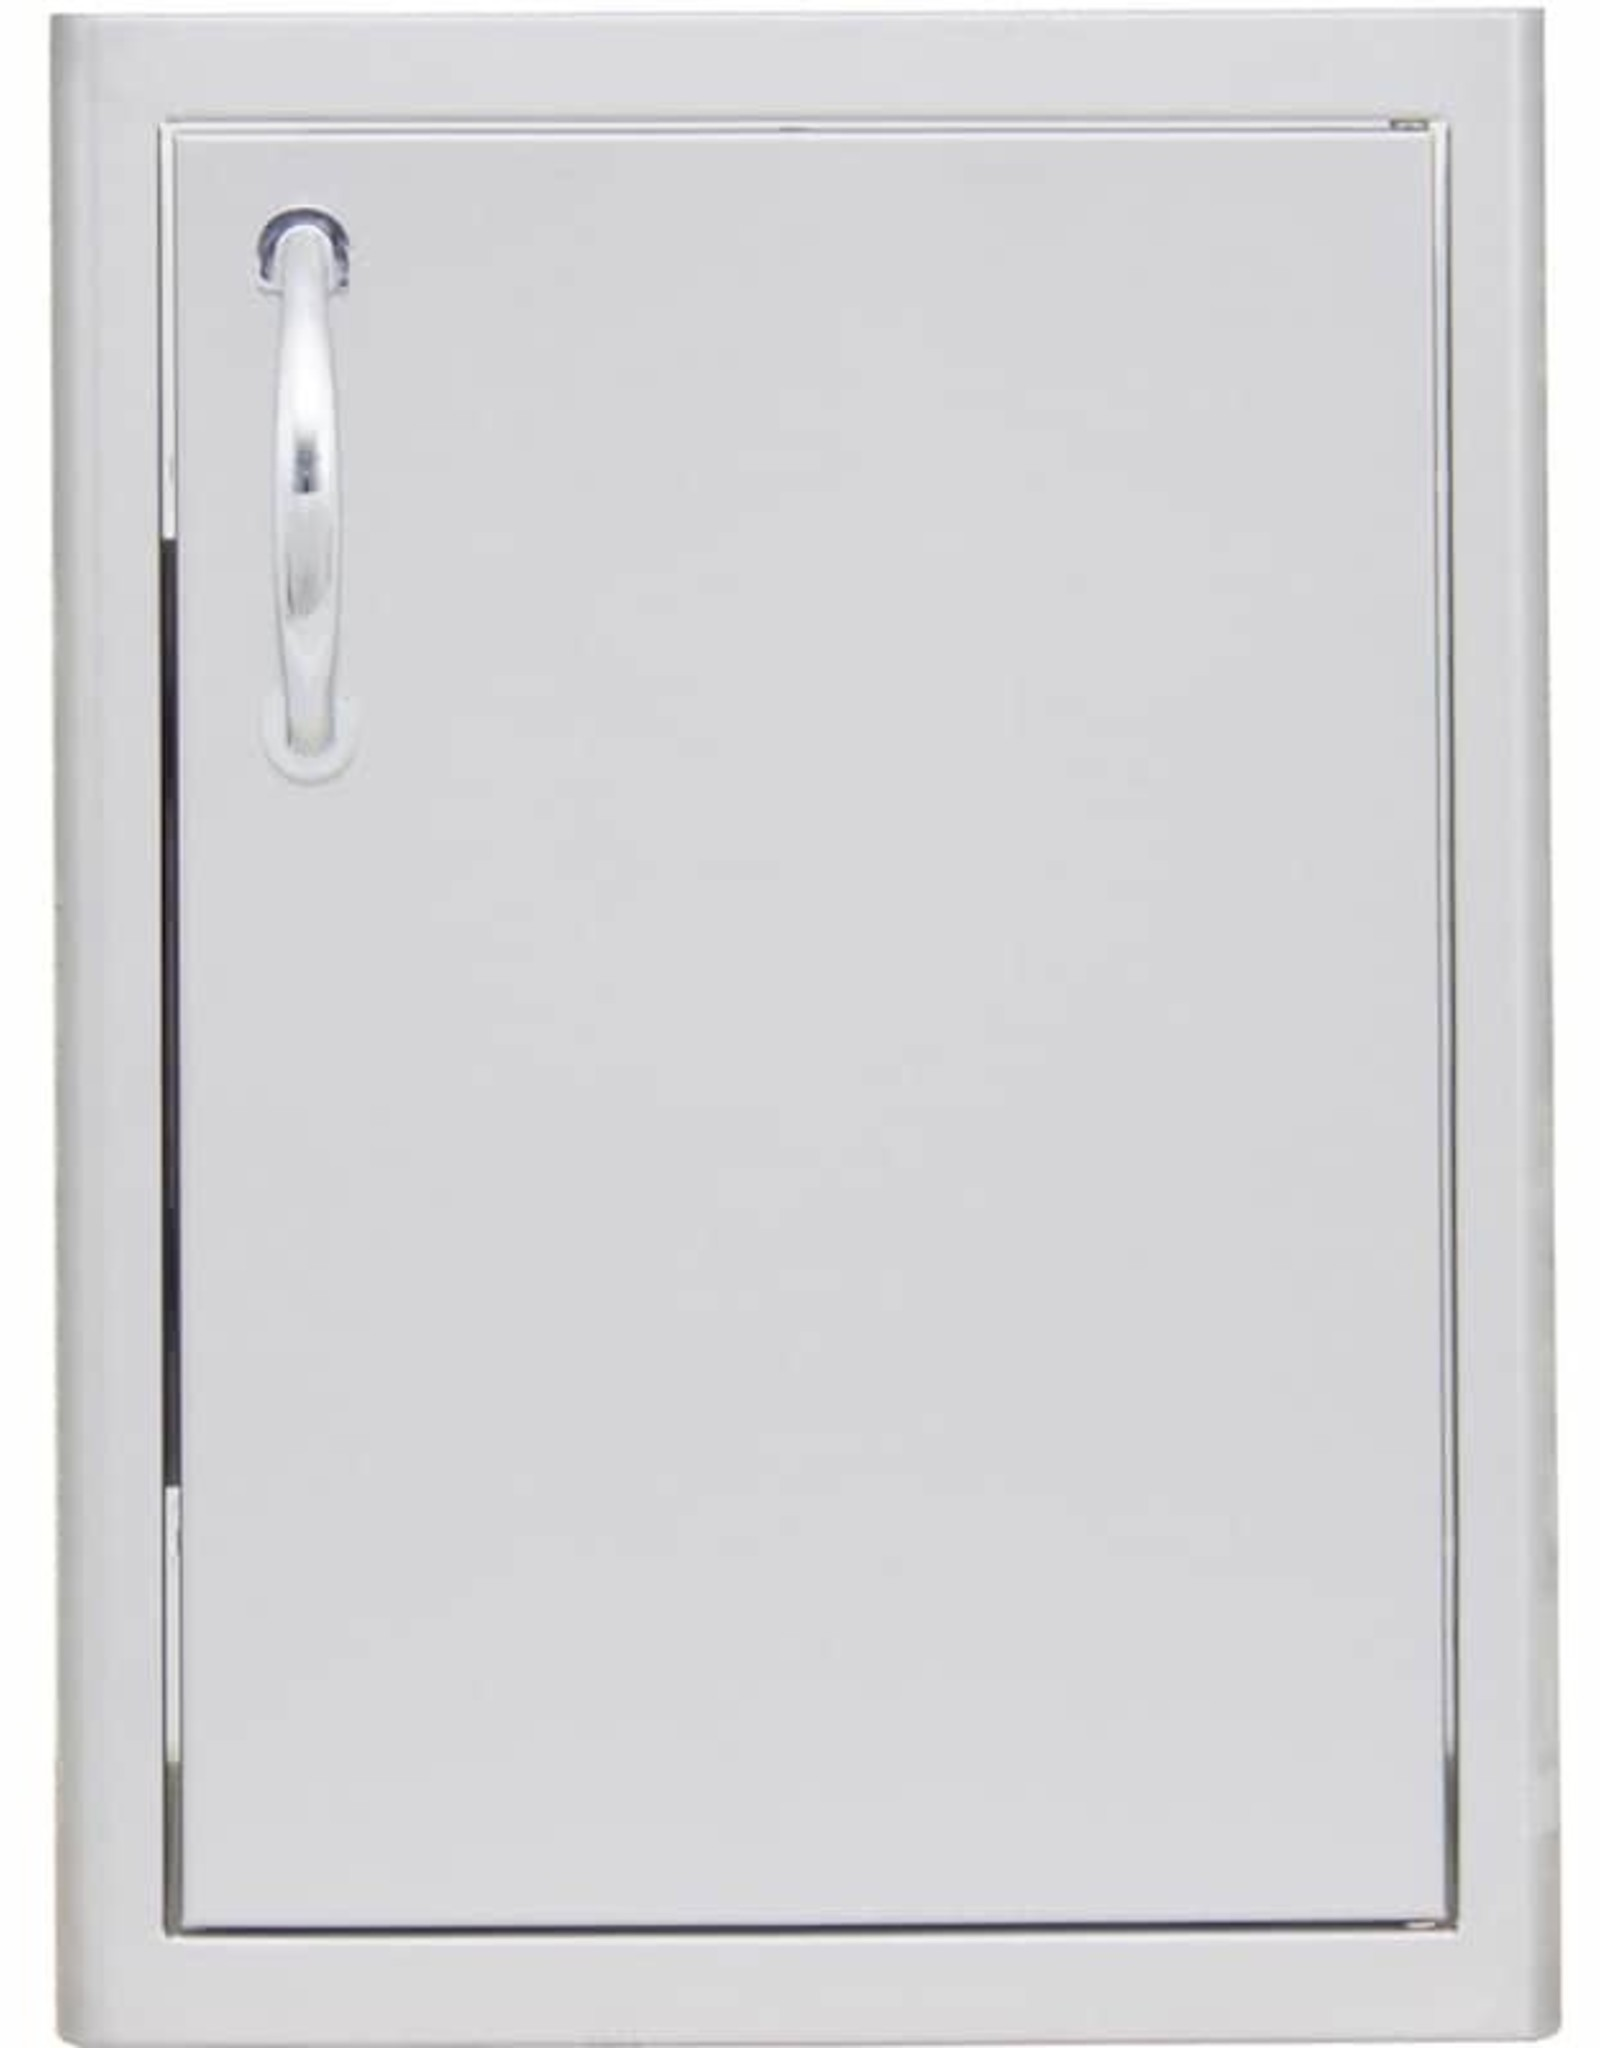 Blaze Outdoor Products Blaze 21-Inch Right Hinged Stainless Steel Single Access Door - Vertical - BLZ-SINGLE-2417-R